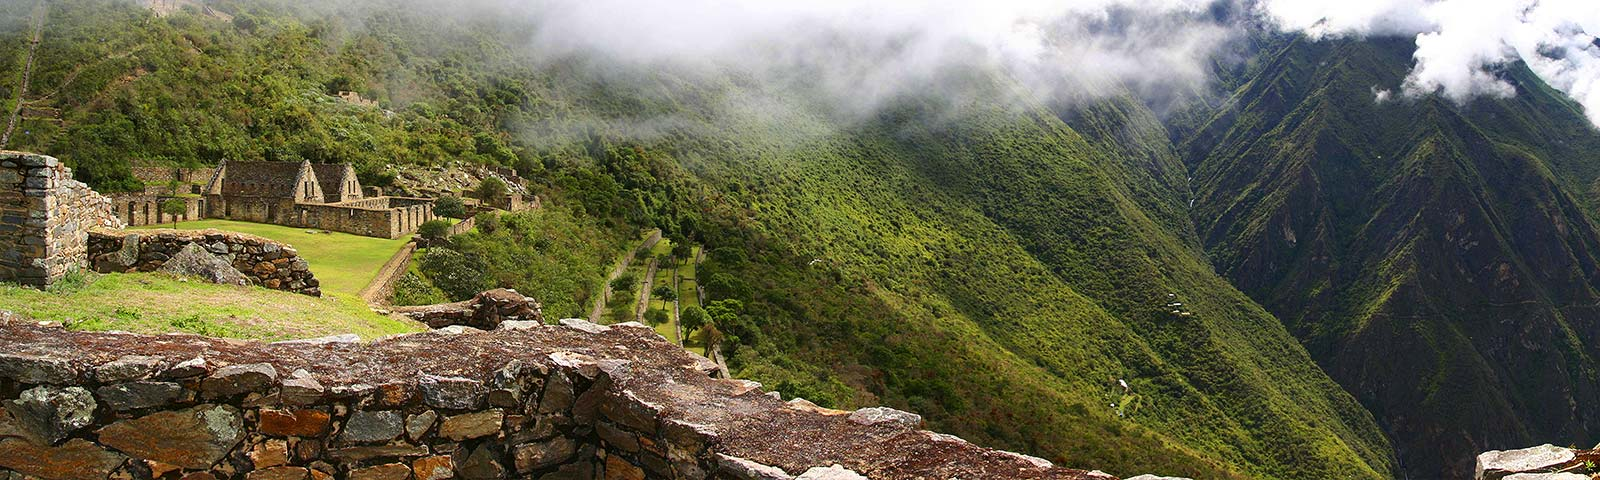 INKA TRAIL, CHOQUEQUIRAO & MACHUPICCHU IN 9 DAYS